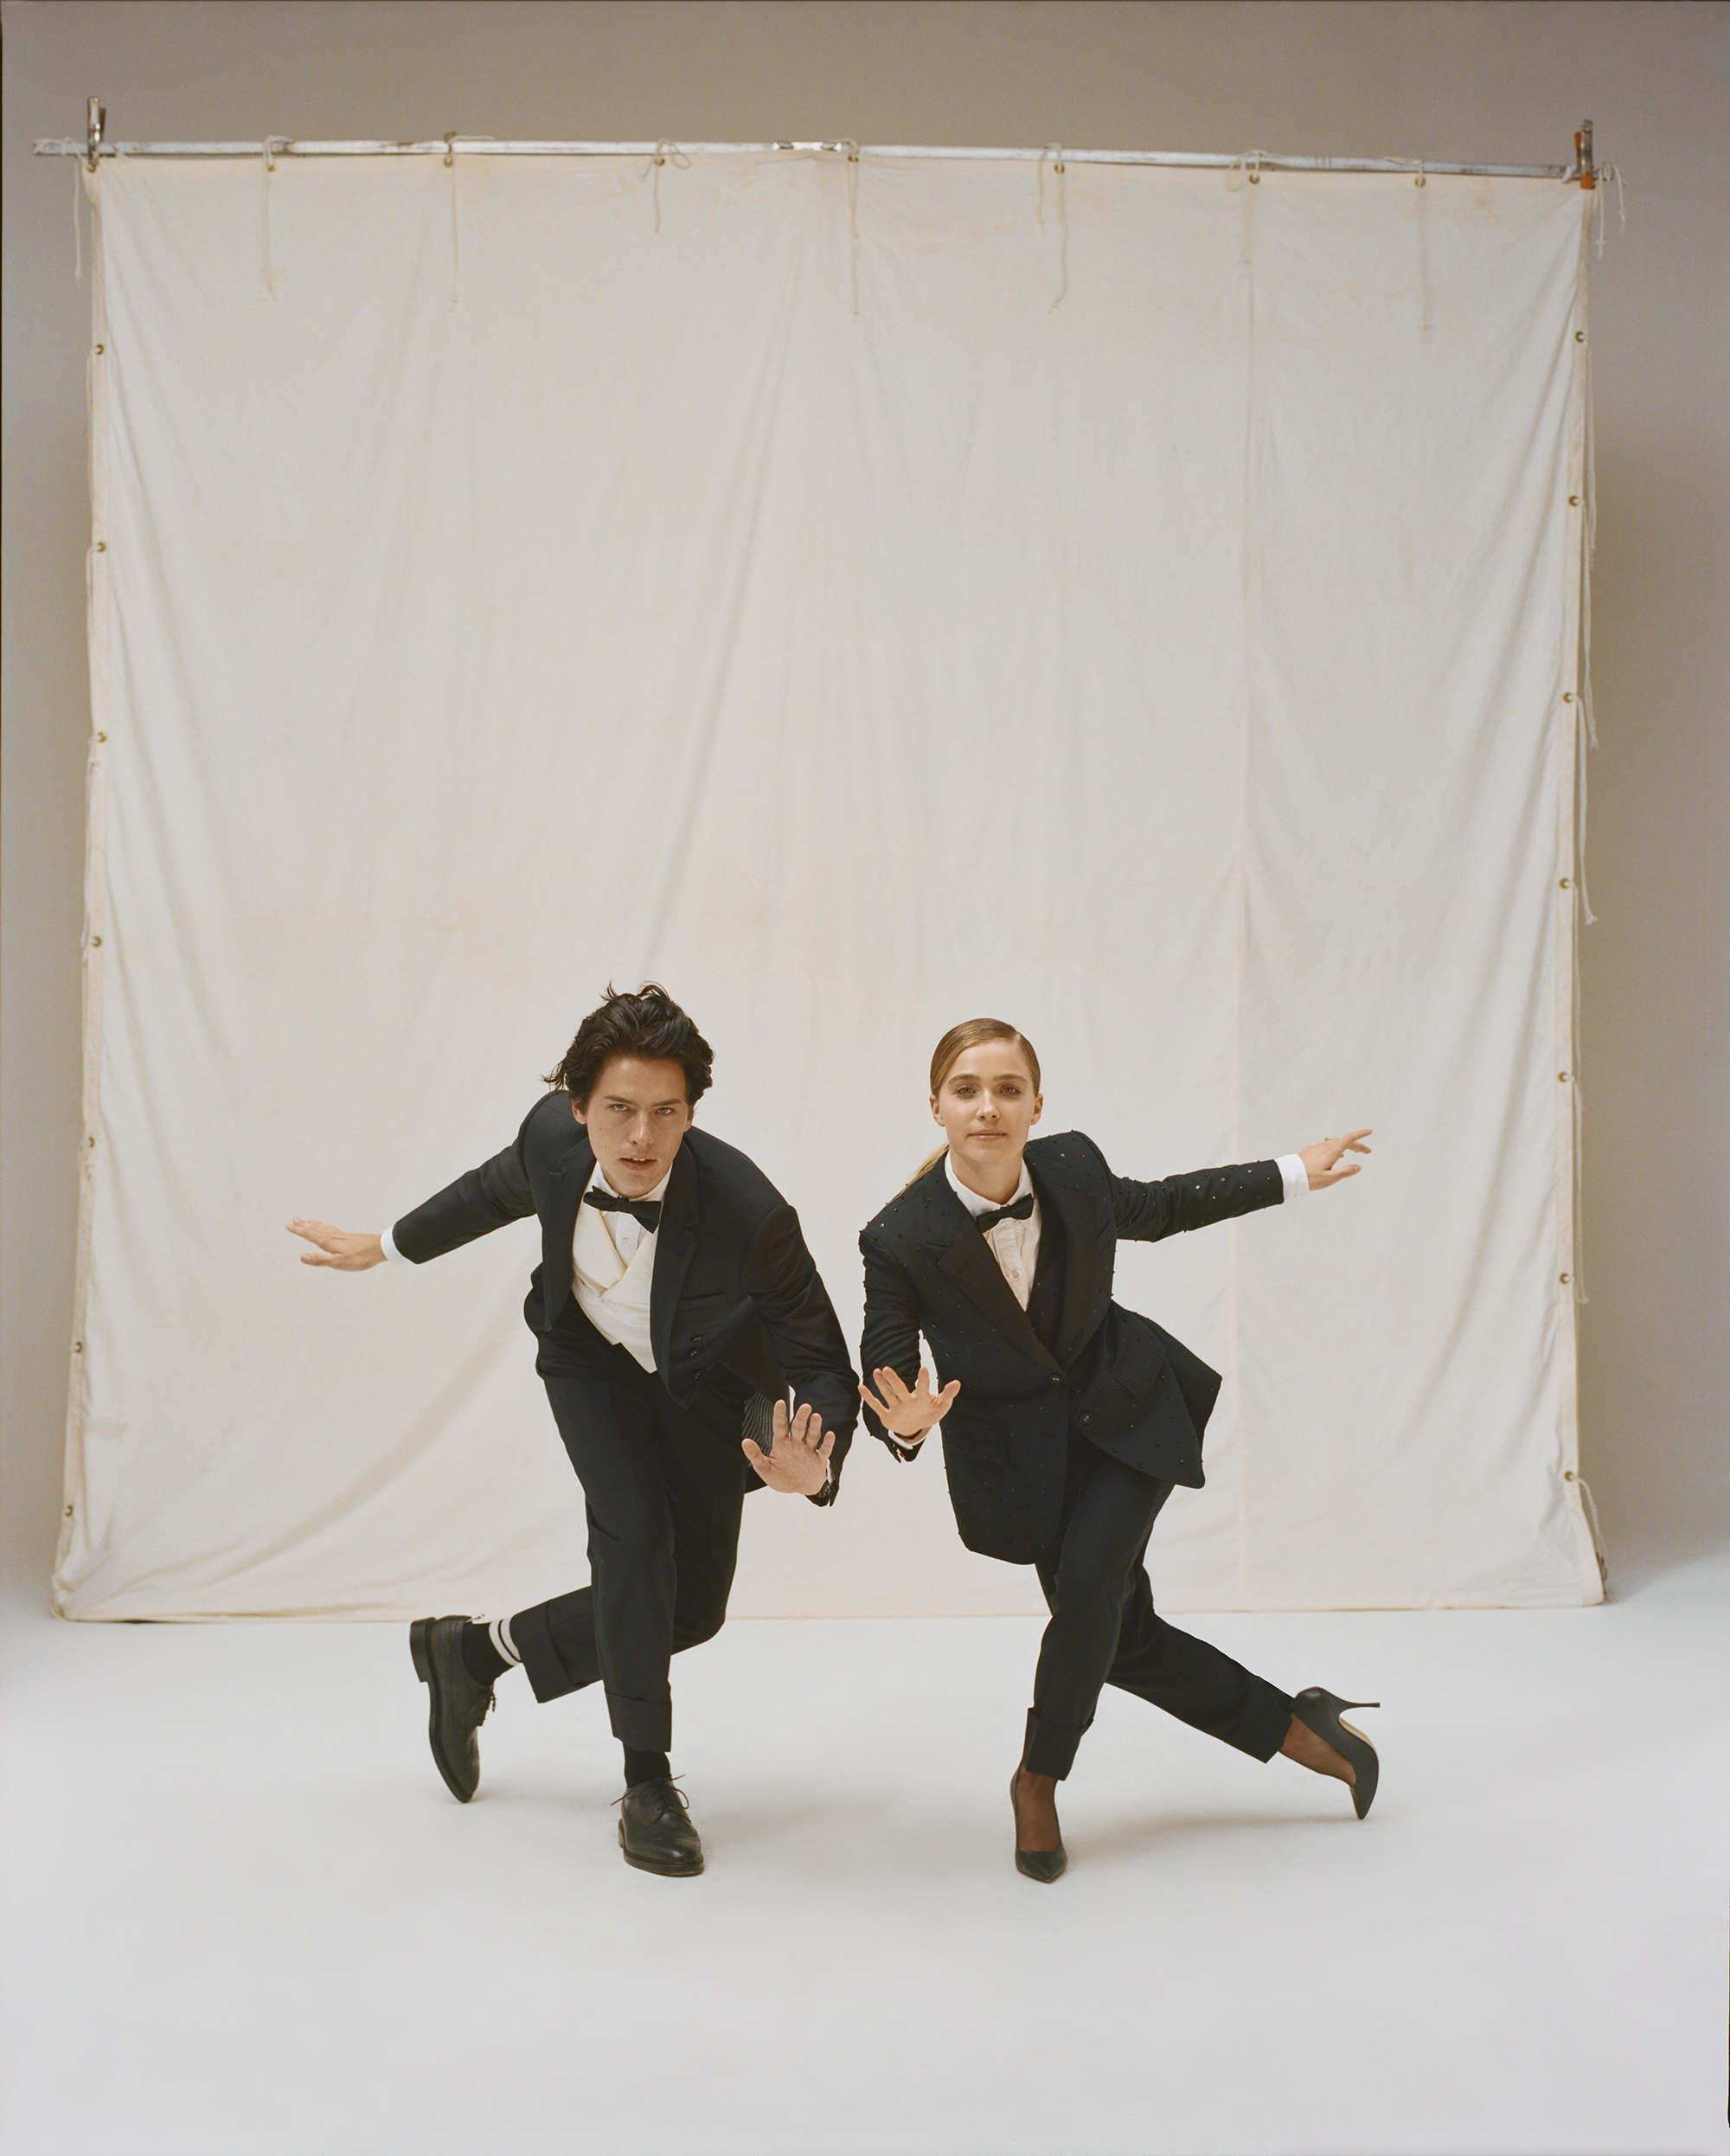 Cole Sprouse and Haley Lu Richardson on the Spring 19 cover of Wonderland in tuxedo's dancing